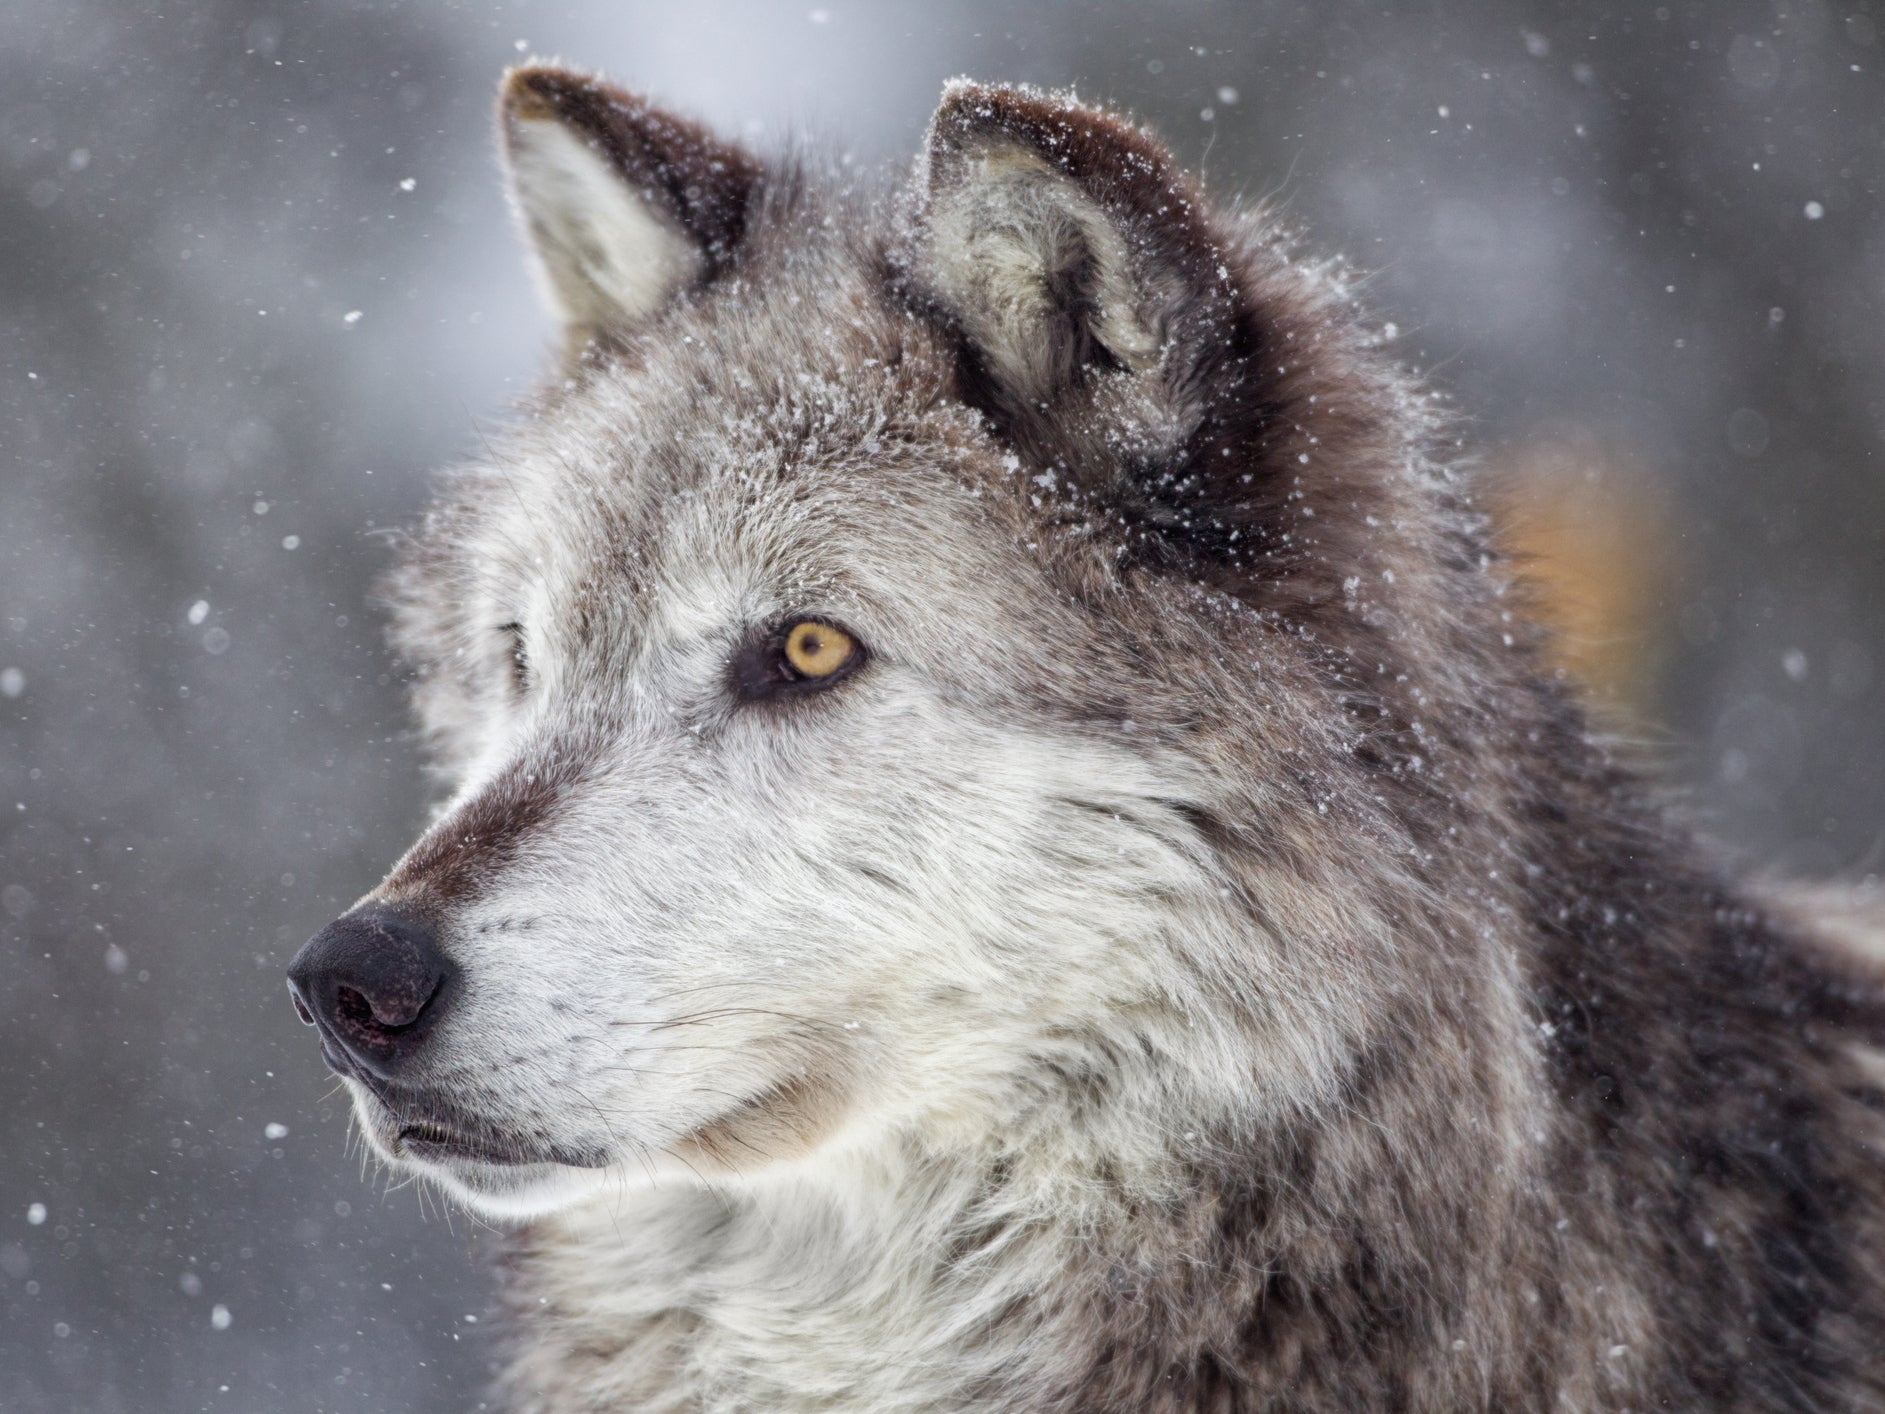 YouTube could be effective wolf conservation tool, research suggests thumbnail